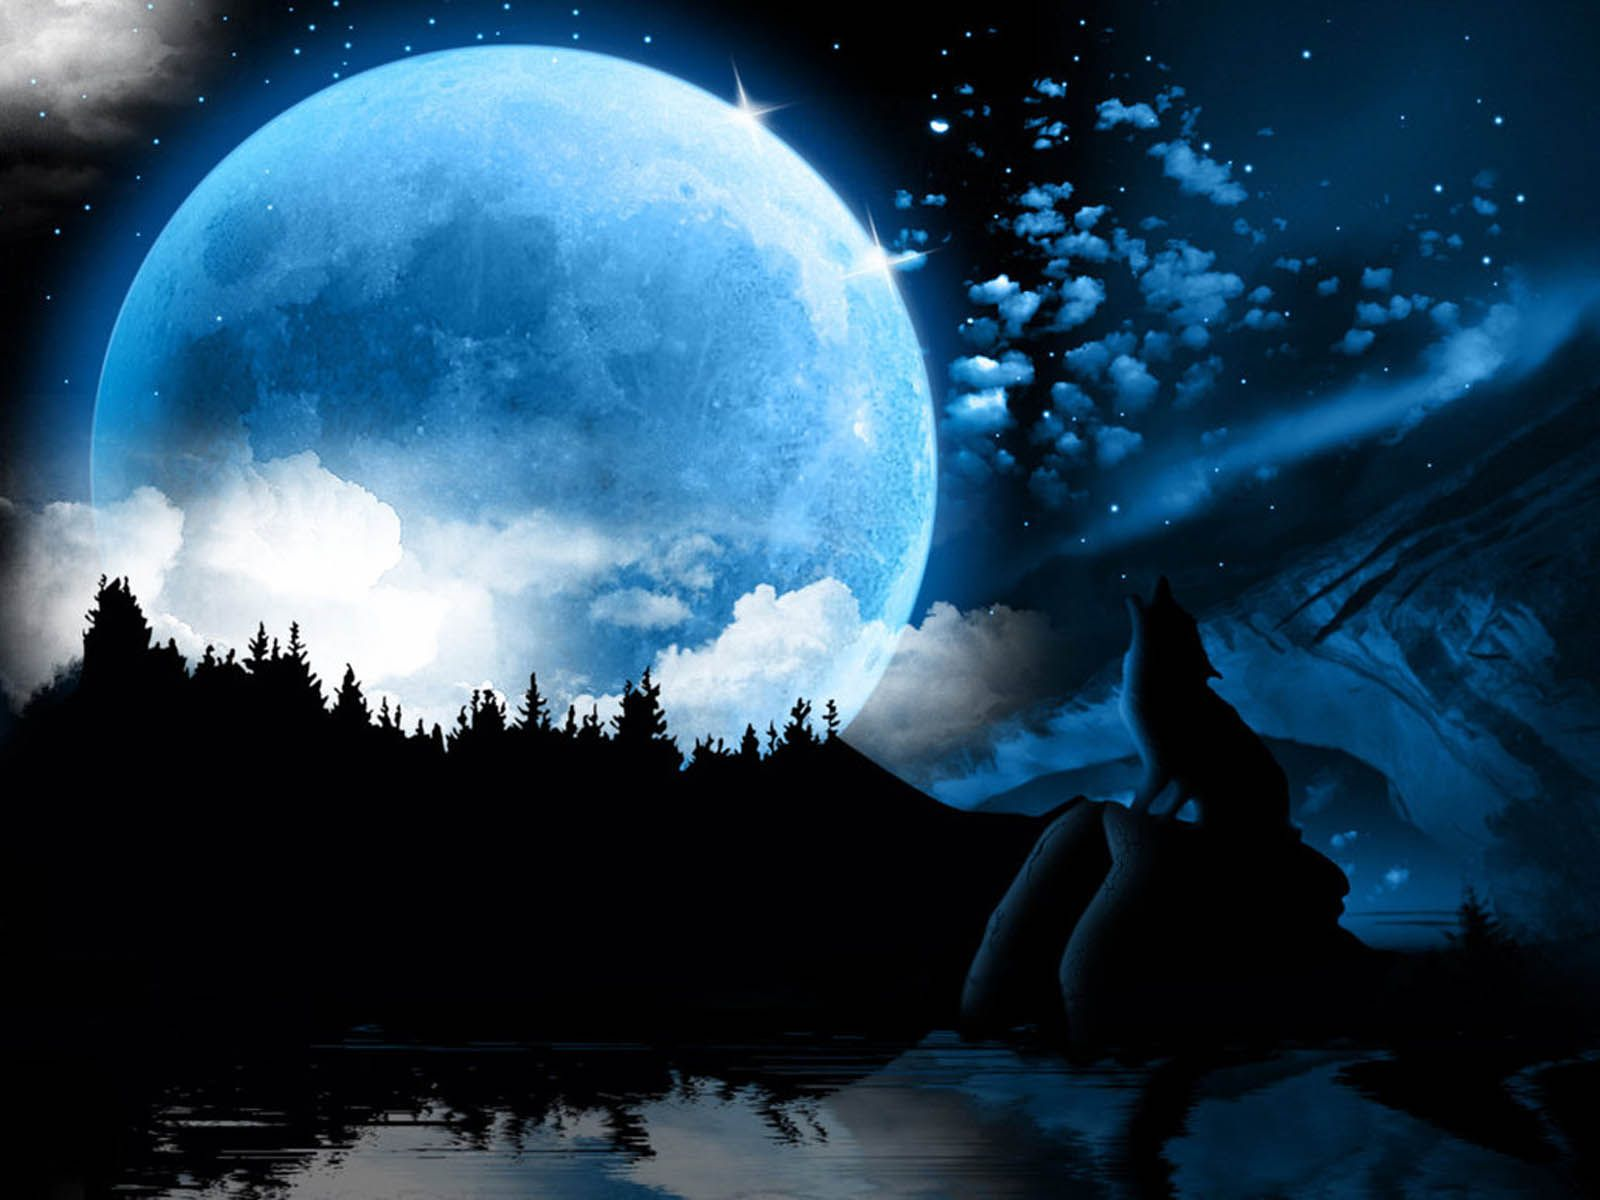 Wallpapers Moon Fantasy Wallpapers Fantasy Images Moon Images Fantasy Planet